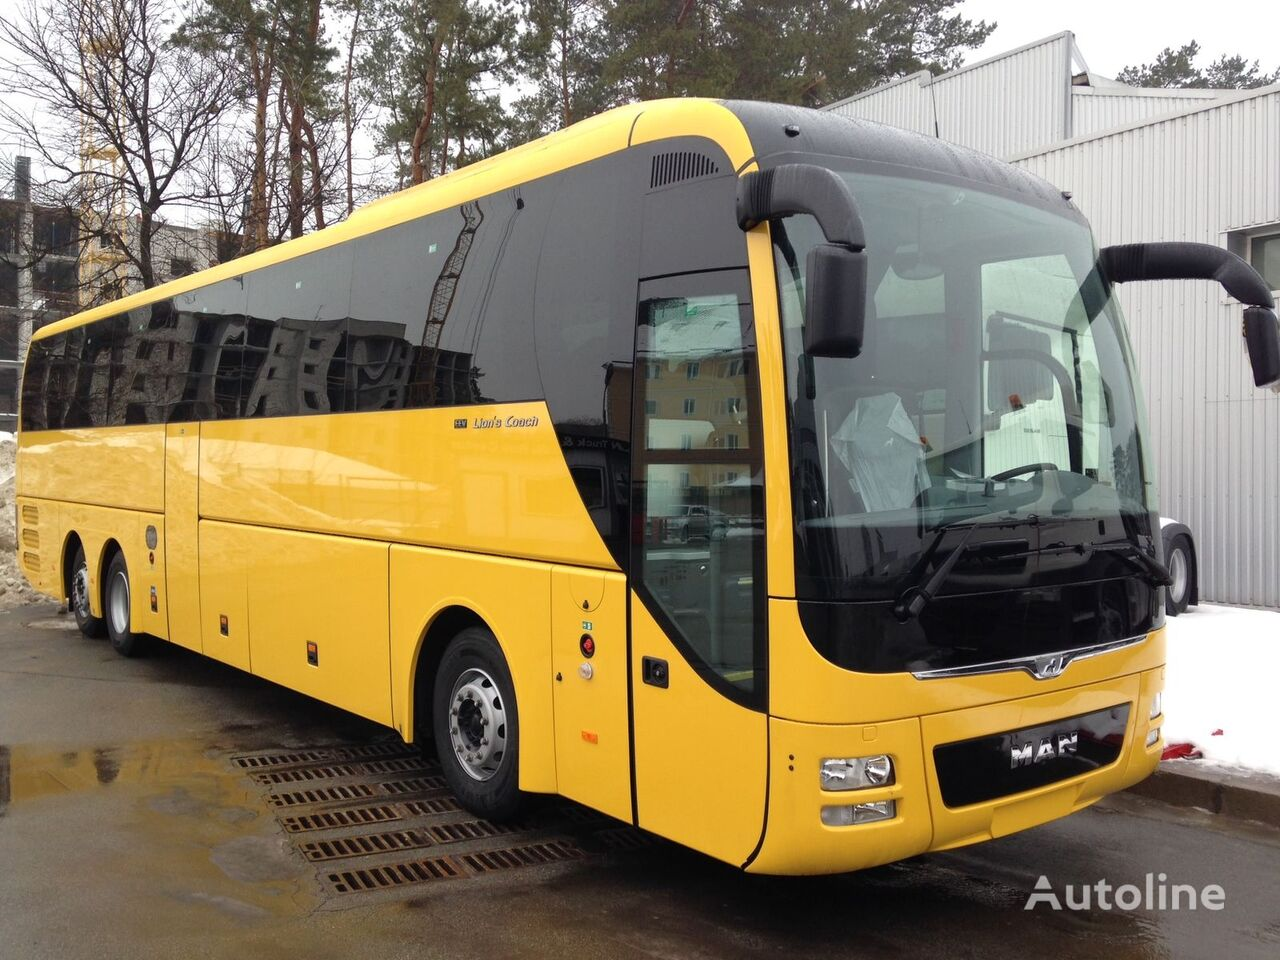 verkauf von neue man lion 39 s coach reisebus aus der ukraine. Black Bedroom Furniture Sets. Home Design Ideas